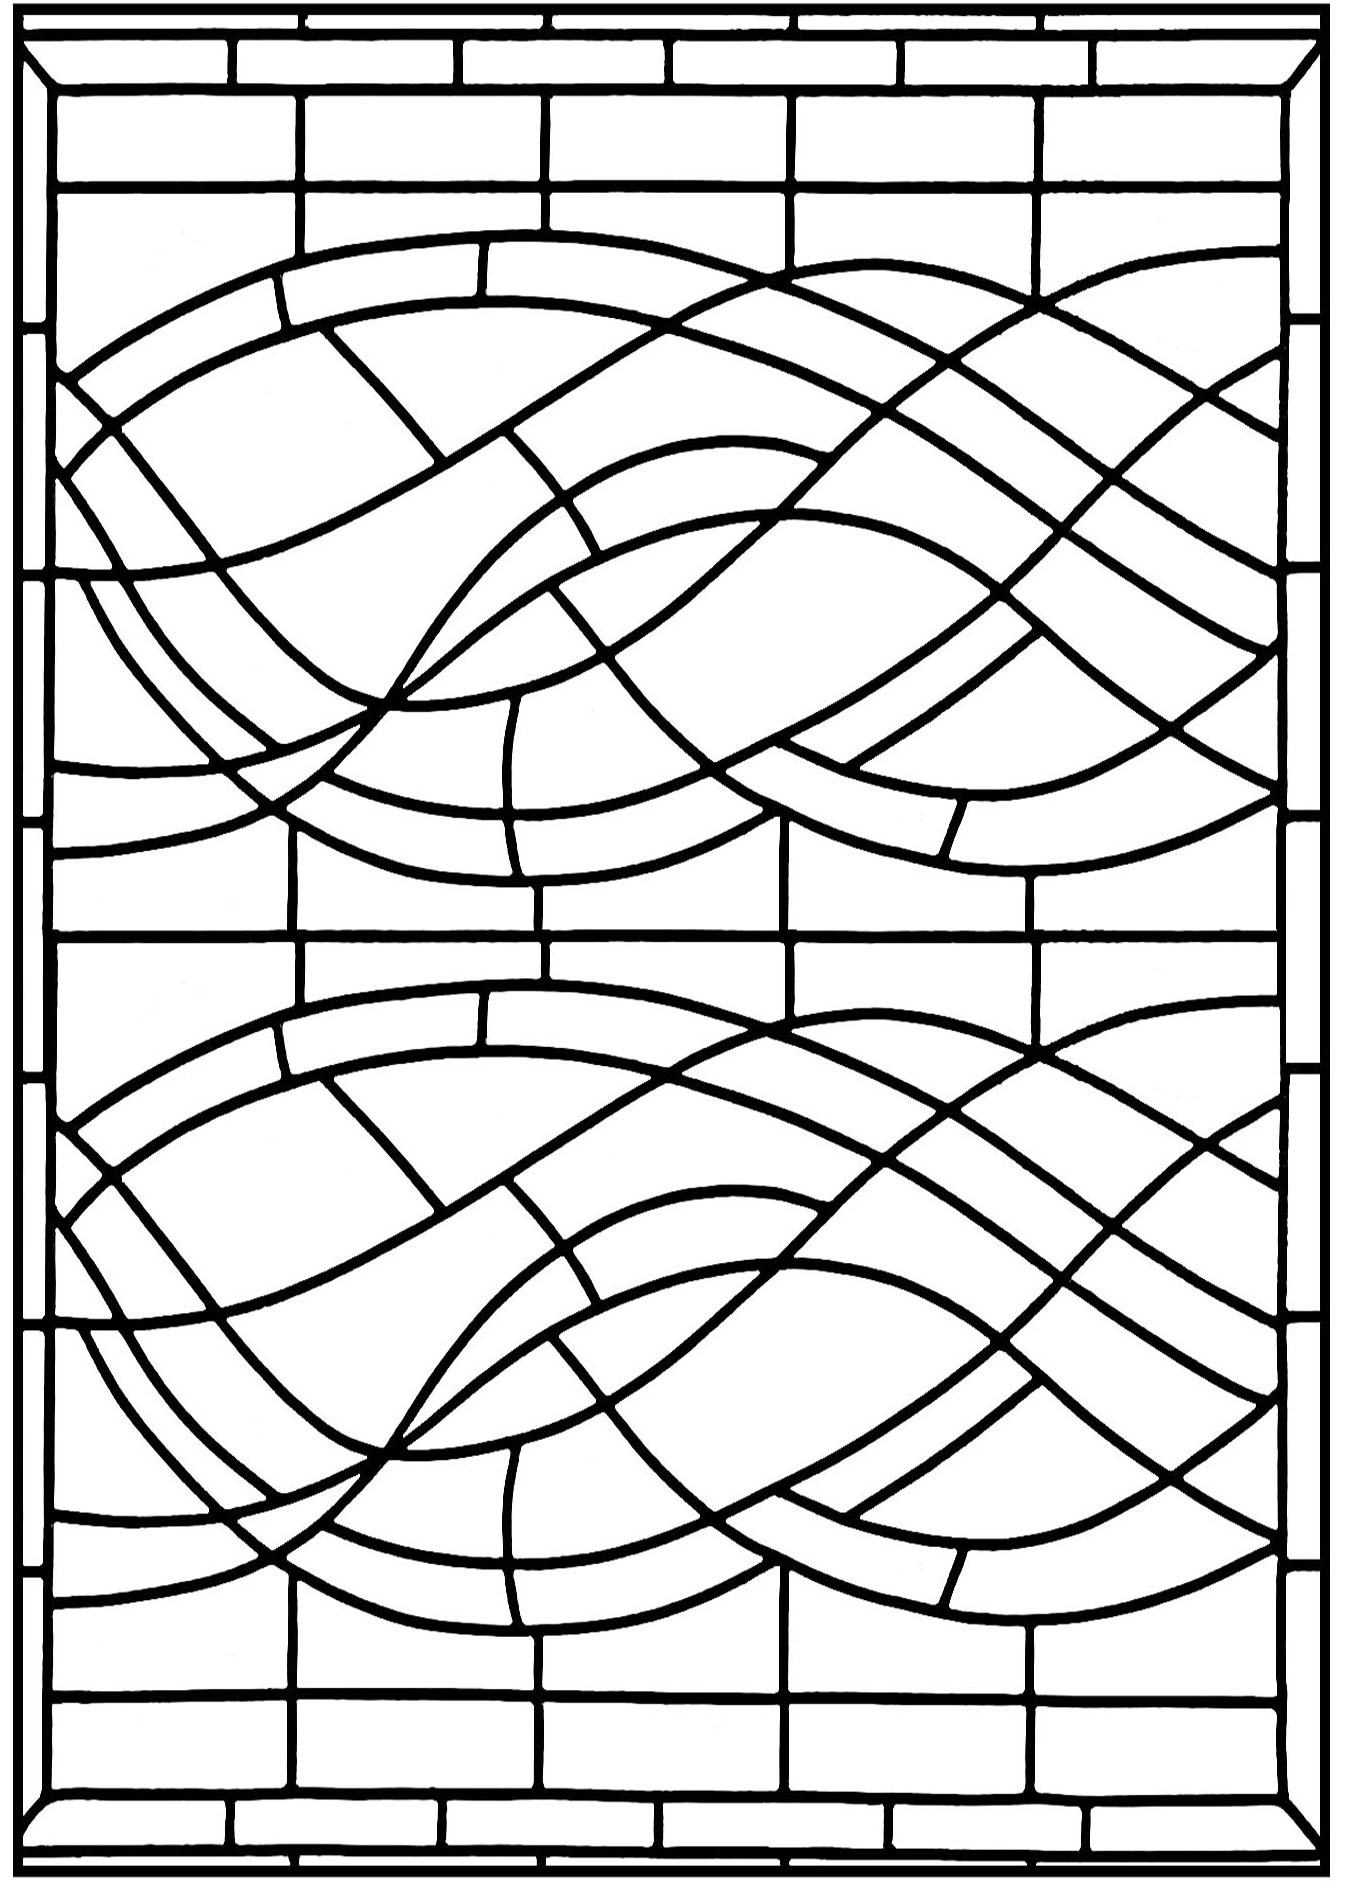 stained glass coloring pages for adults stained glass coloring pages for adults best coloring pages glass stained coloring for adults